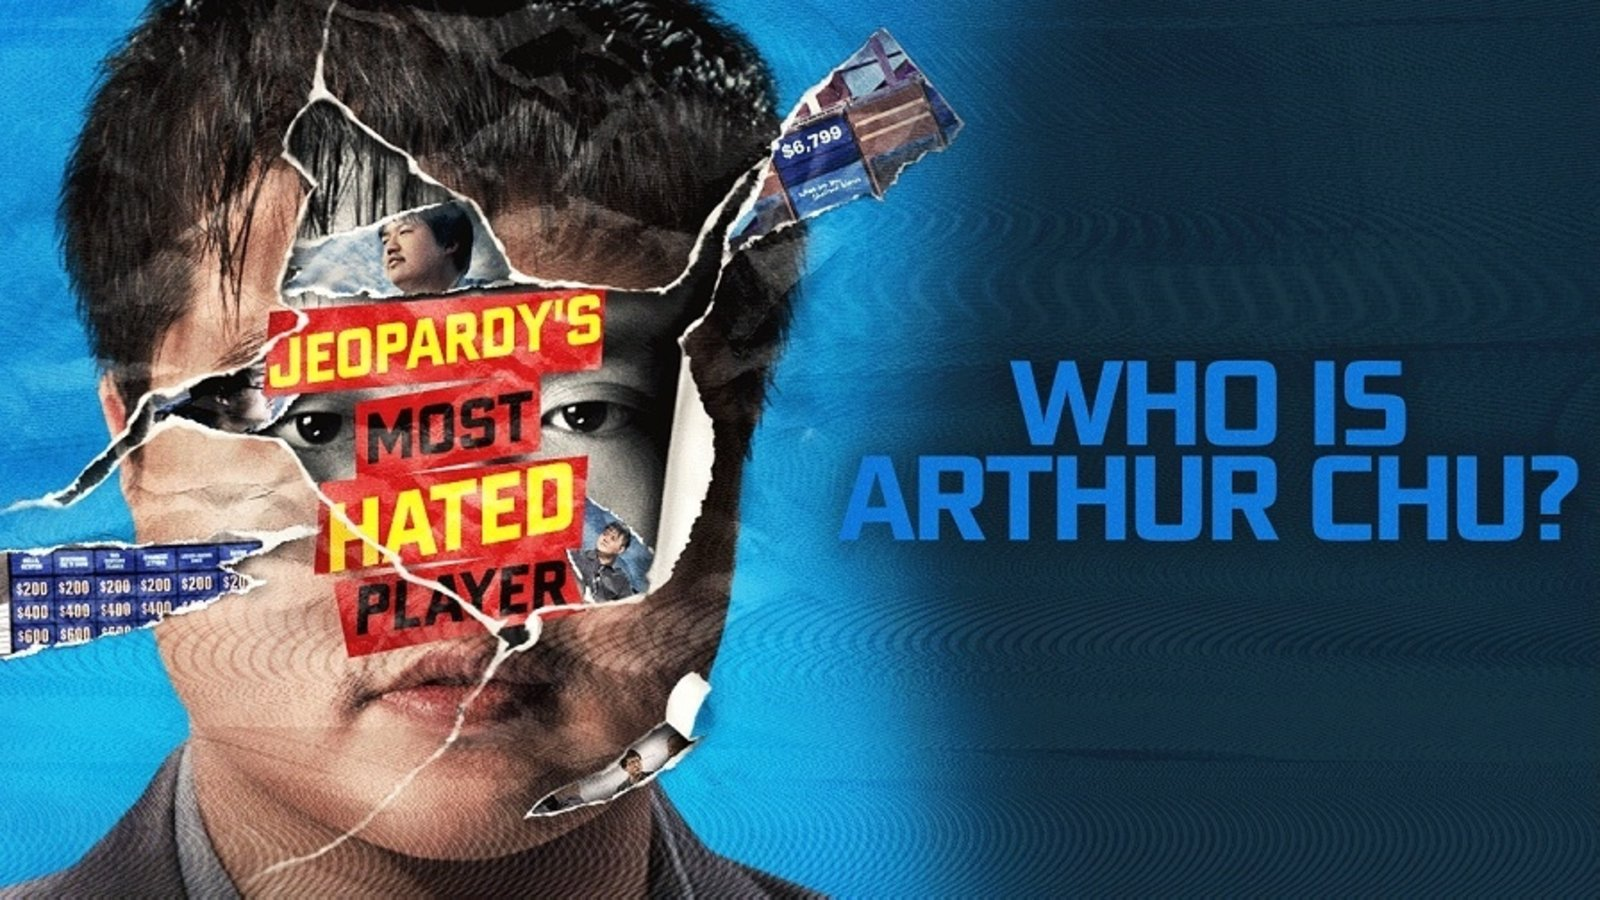 Who Is Arthur Chu? - A Jeopardy Champion Fighting for Social Change